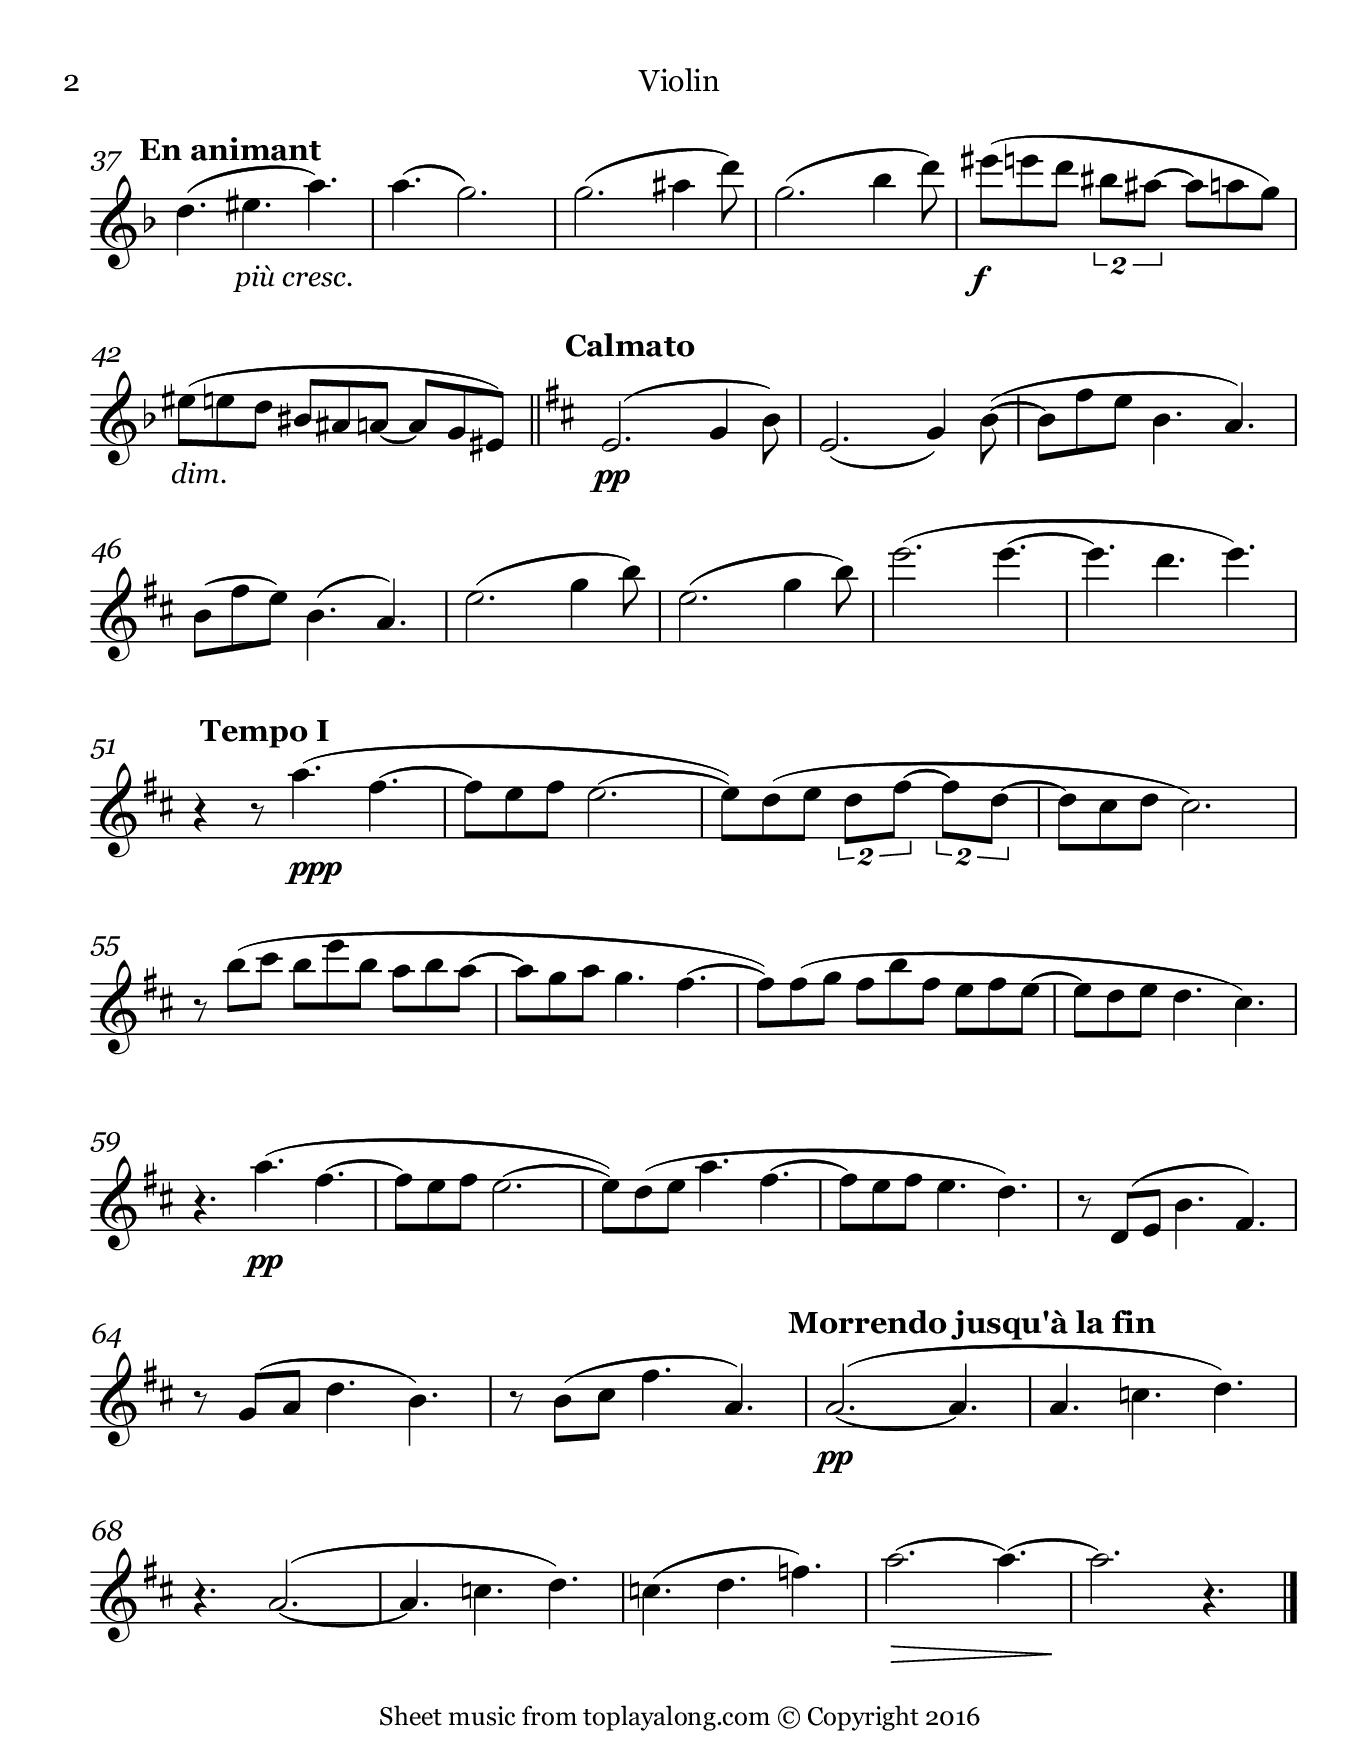 Clair de lune from Suite bergamasque by Debussy. Sheet music for Violin, page 2.